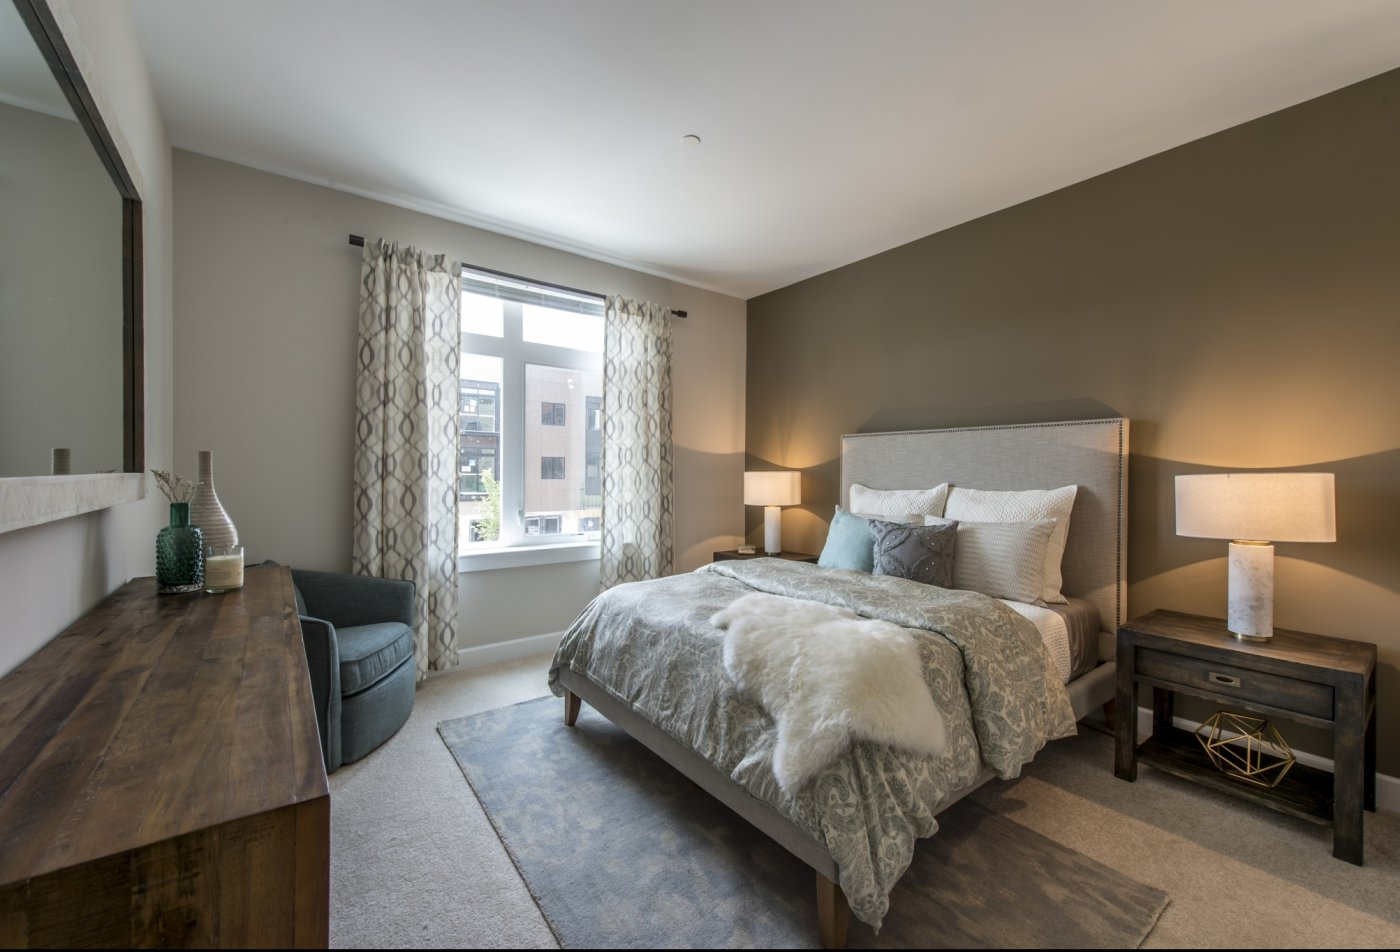 1 Bedroom Apartments | Brookside Square